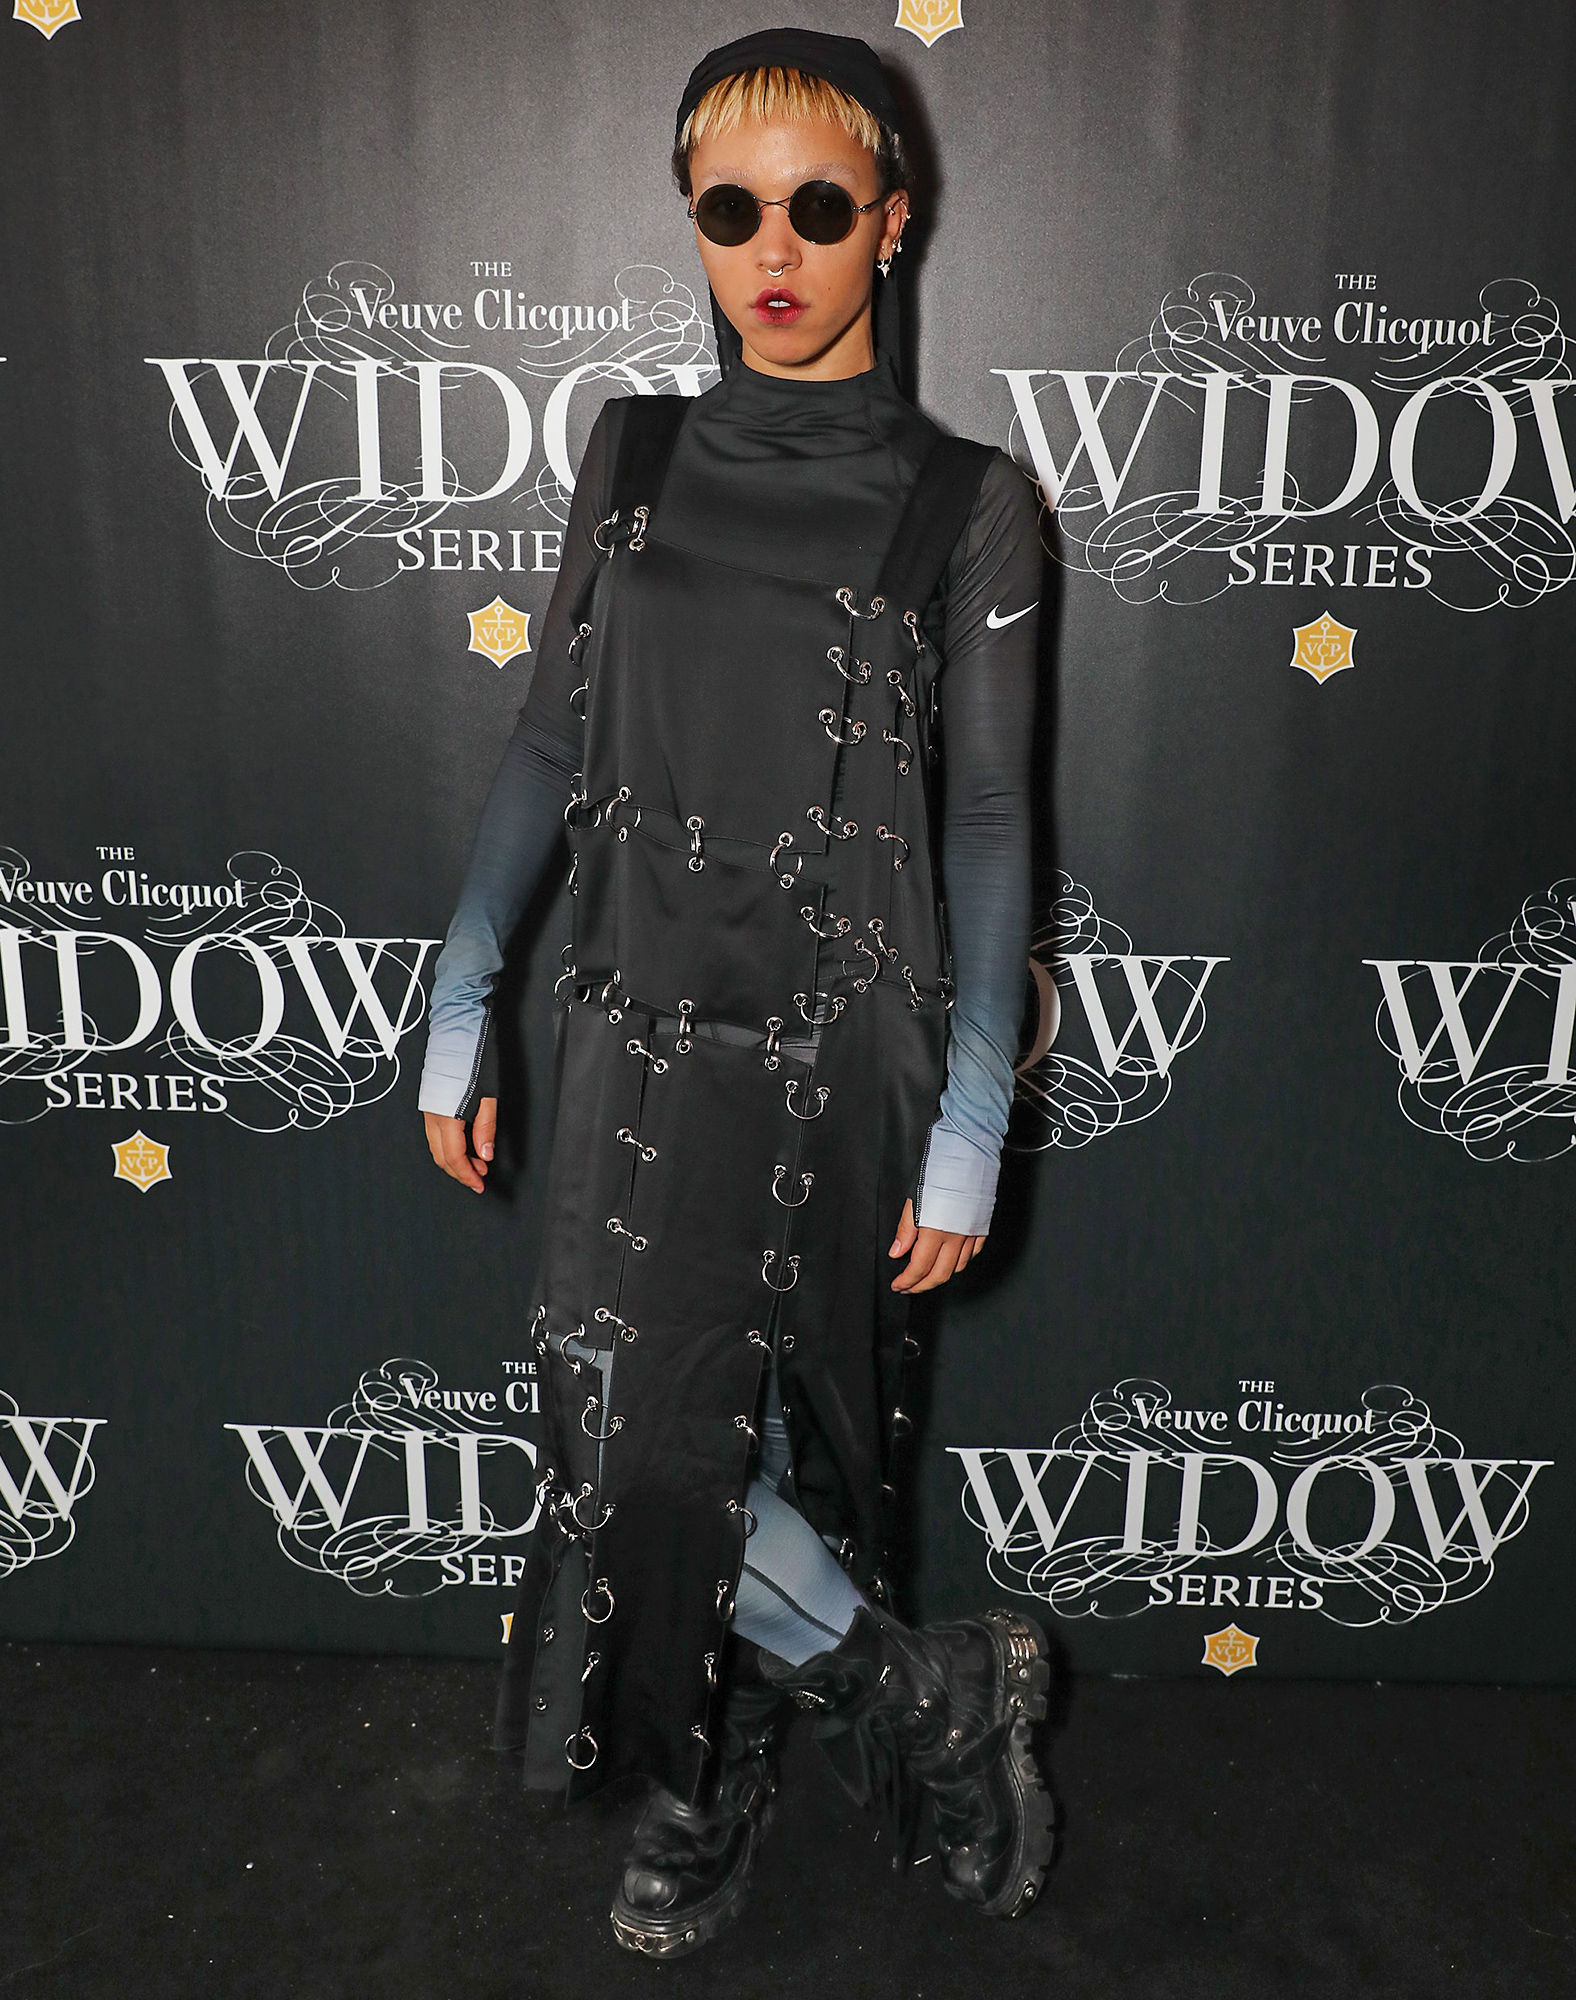 """The Veuve Clicquot Widow Series """"ROOMS"""" Curated By FKA twigs - Arrivals"""